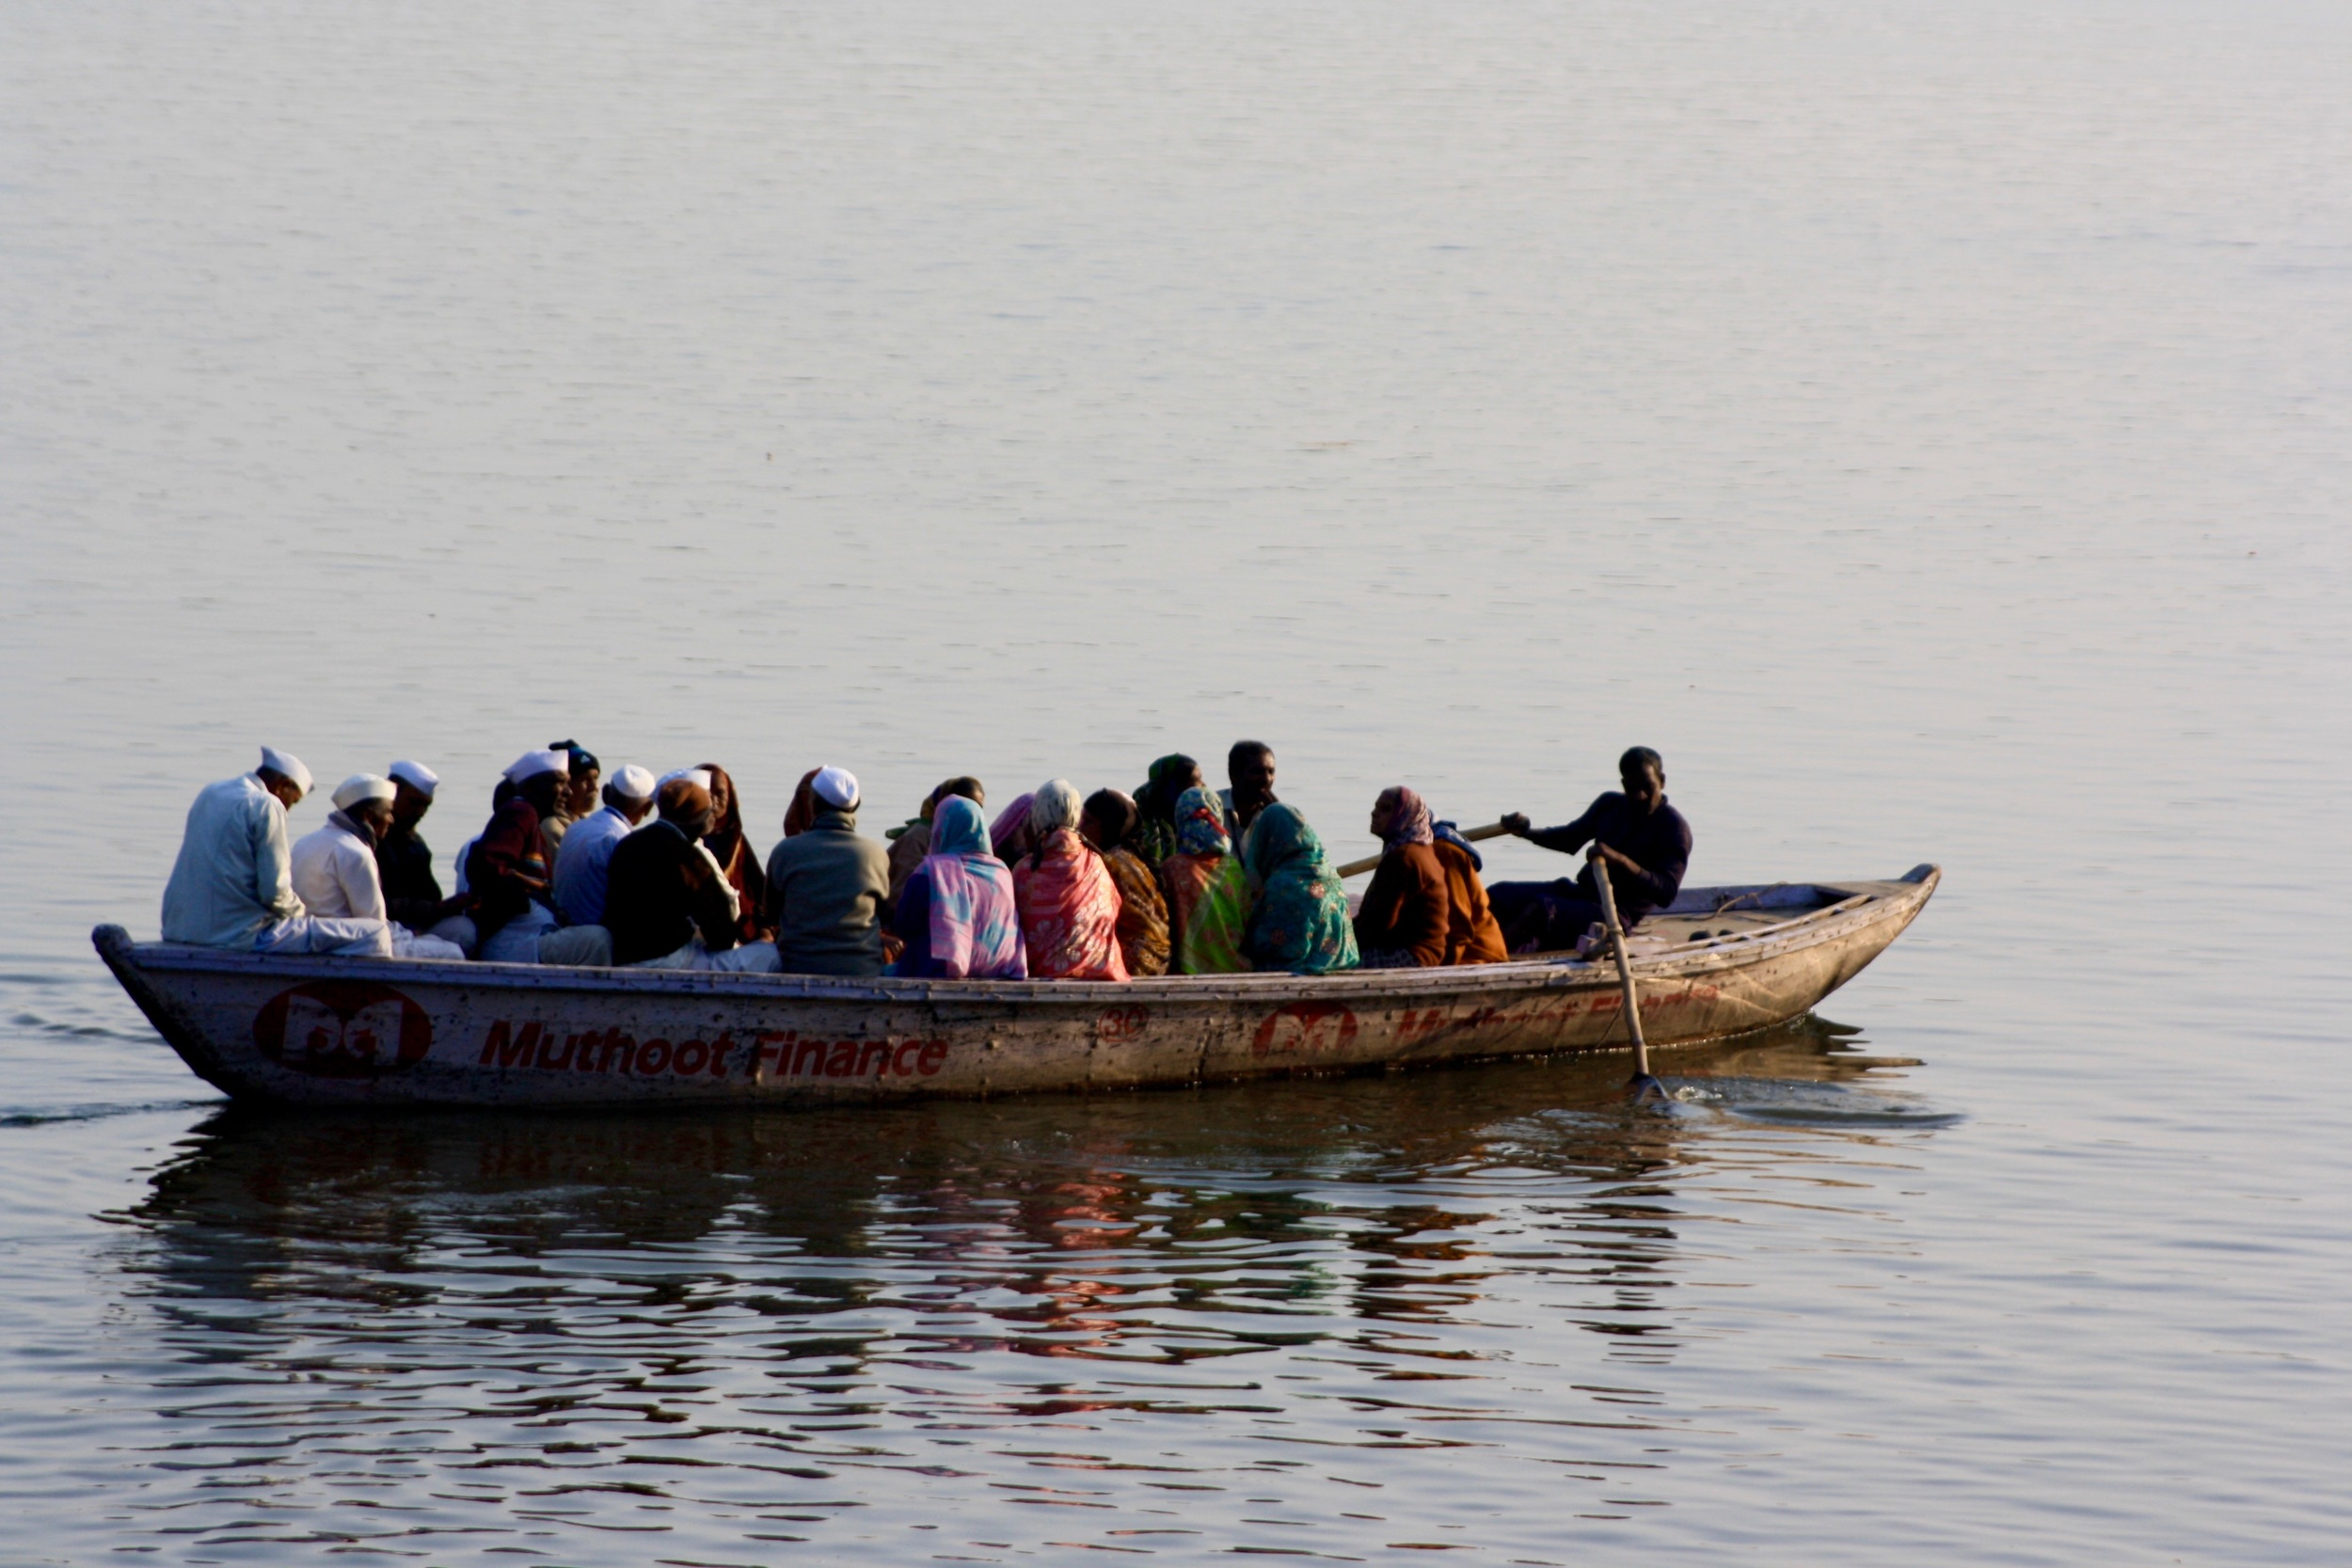 Ferrying across the Ganges